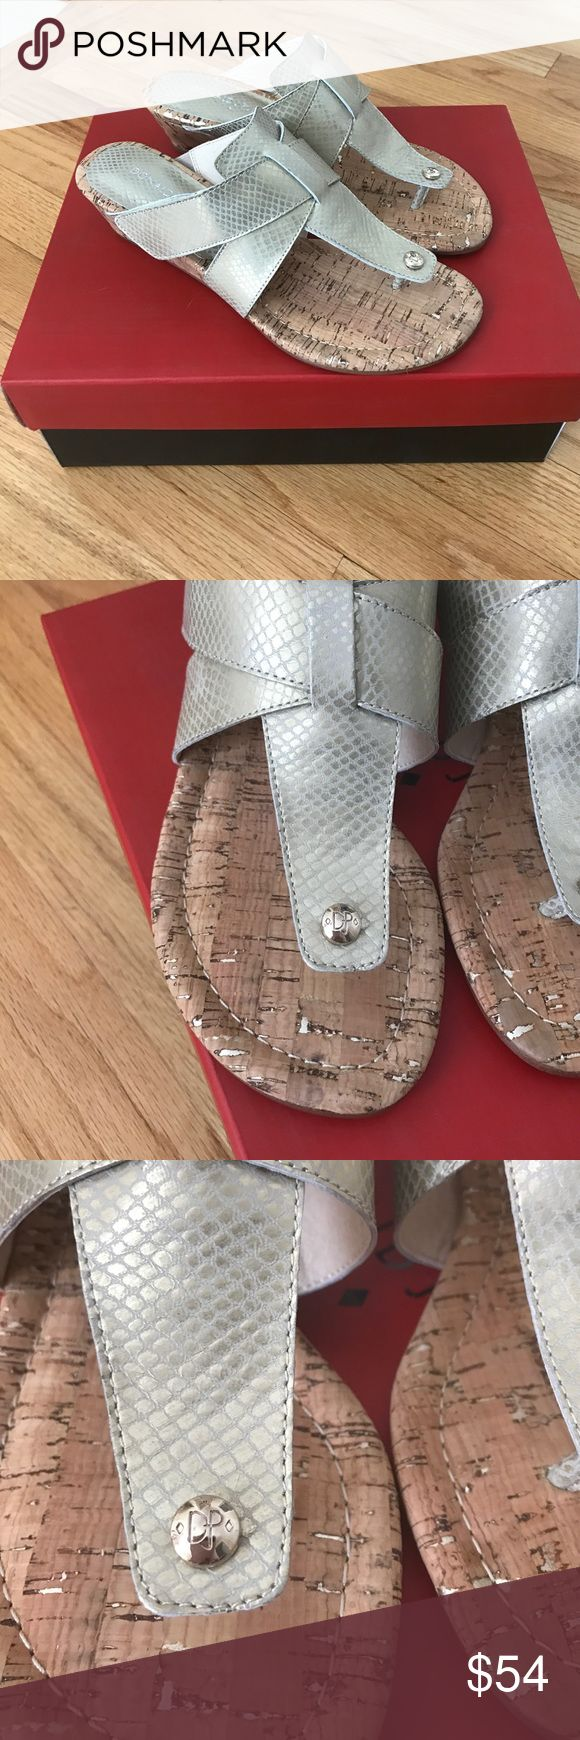 New Donald J Pliner metallic wedge sandals Metallic leather slides, a very subtle  metallic  tint, but the color name is Platino.  Gorgeous color.  Minamalist chic thong wedge slides.  padded footbed.  No trades.  Please reach out with any questions. Shoes Sandals